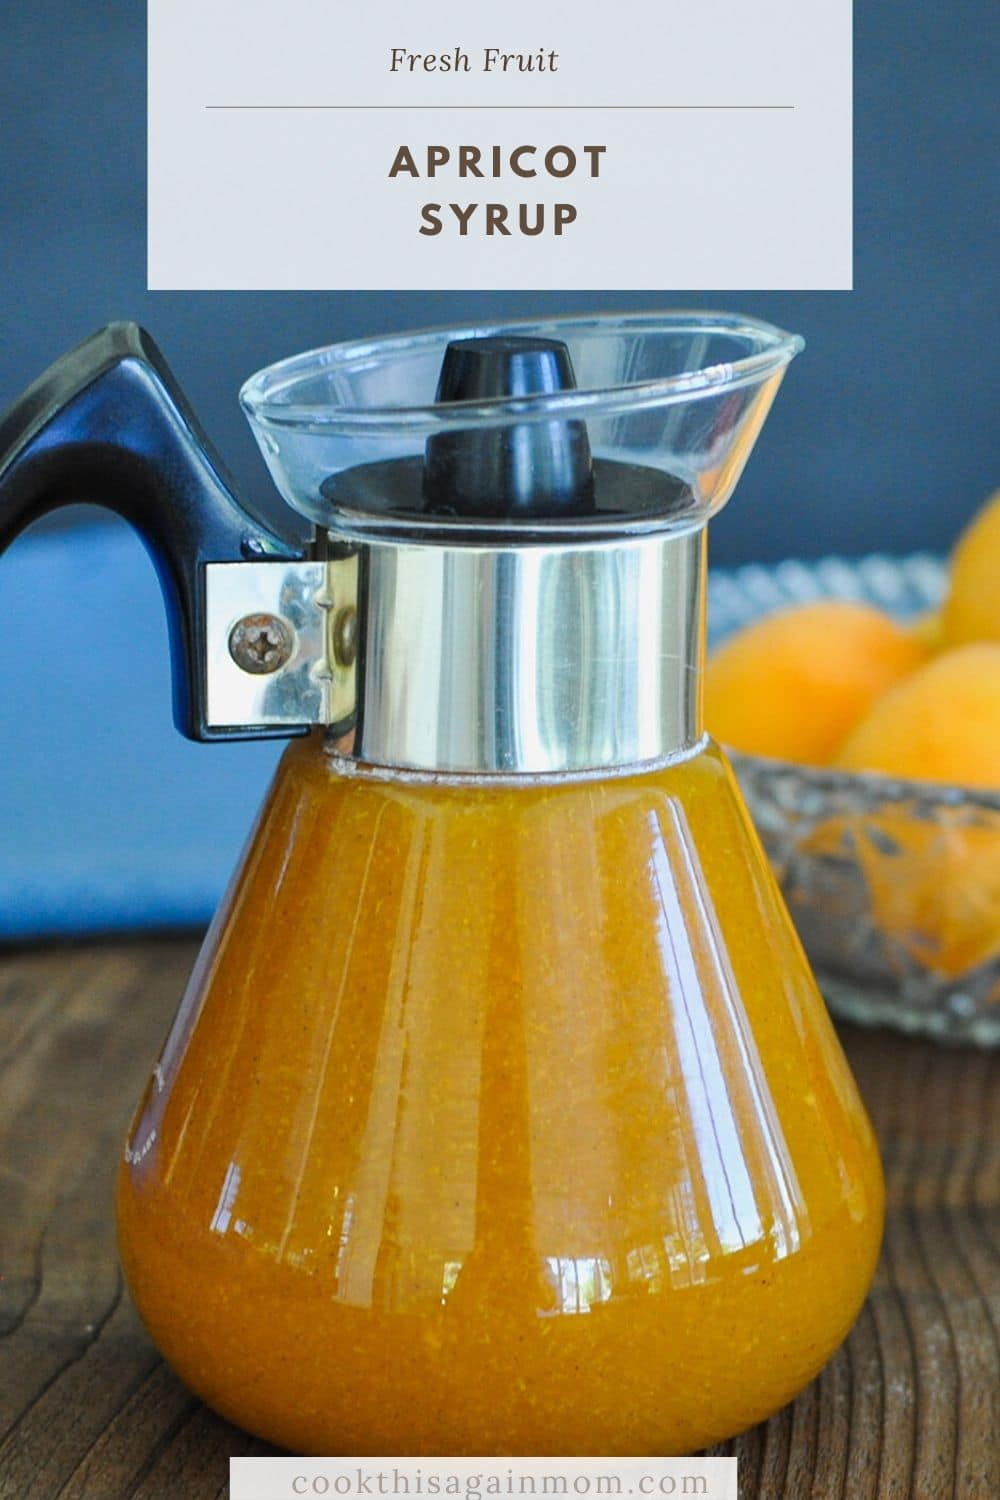 A close up photo of a glass syrup dispenser filled with homemade fruit syrup